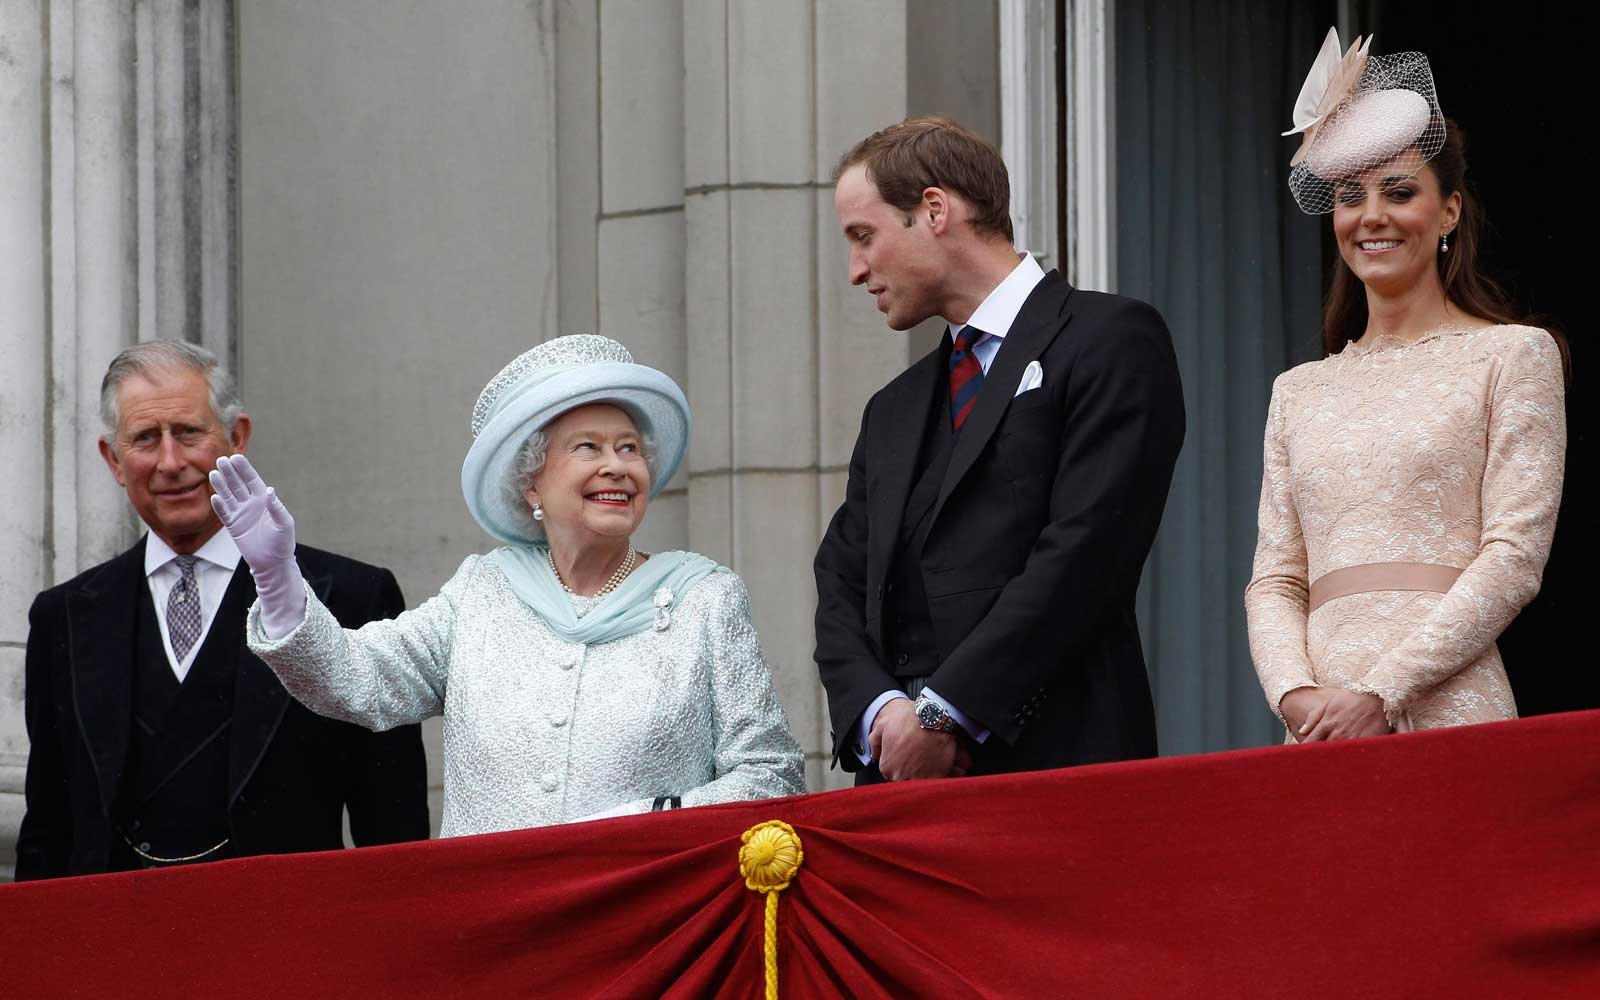 LONDON, UNITED KINGDOM - JUNE 05:  (L-R) Prince Charles, Prince of Wales, Queen Elizabeth II, Prince William, Duke of Cambridge and Catherine, Duchess of Cambridge on the balcony of Buckingham Palace during the finale of the Queen's Diamond Jubilee celebr